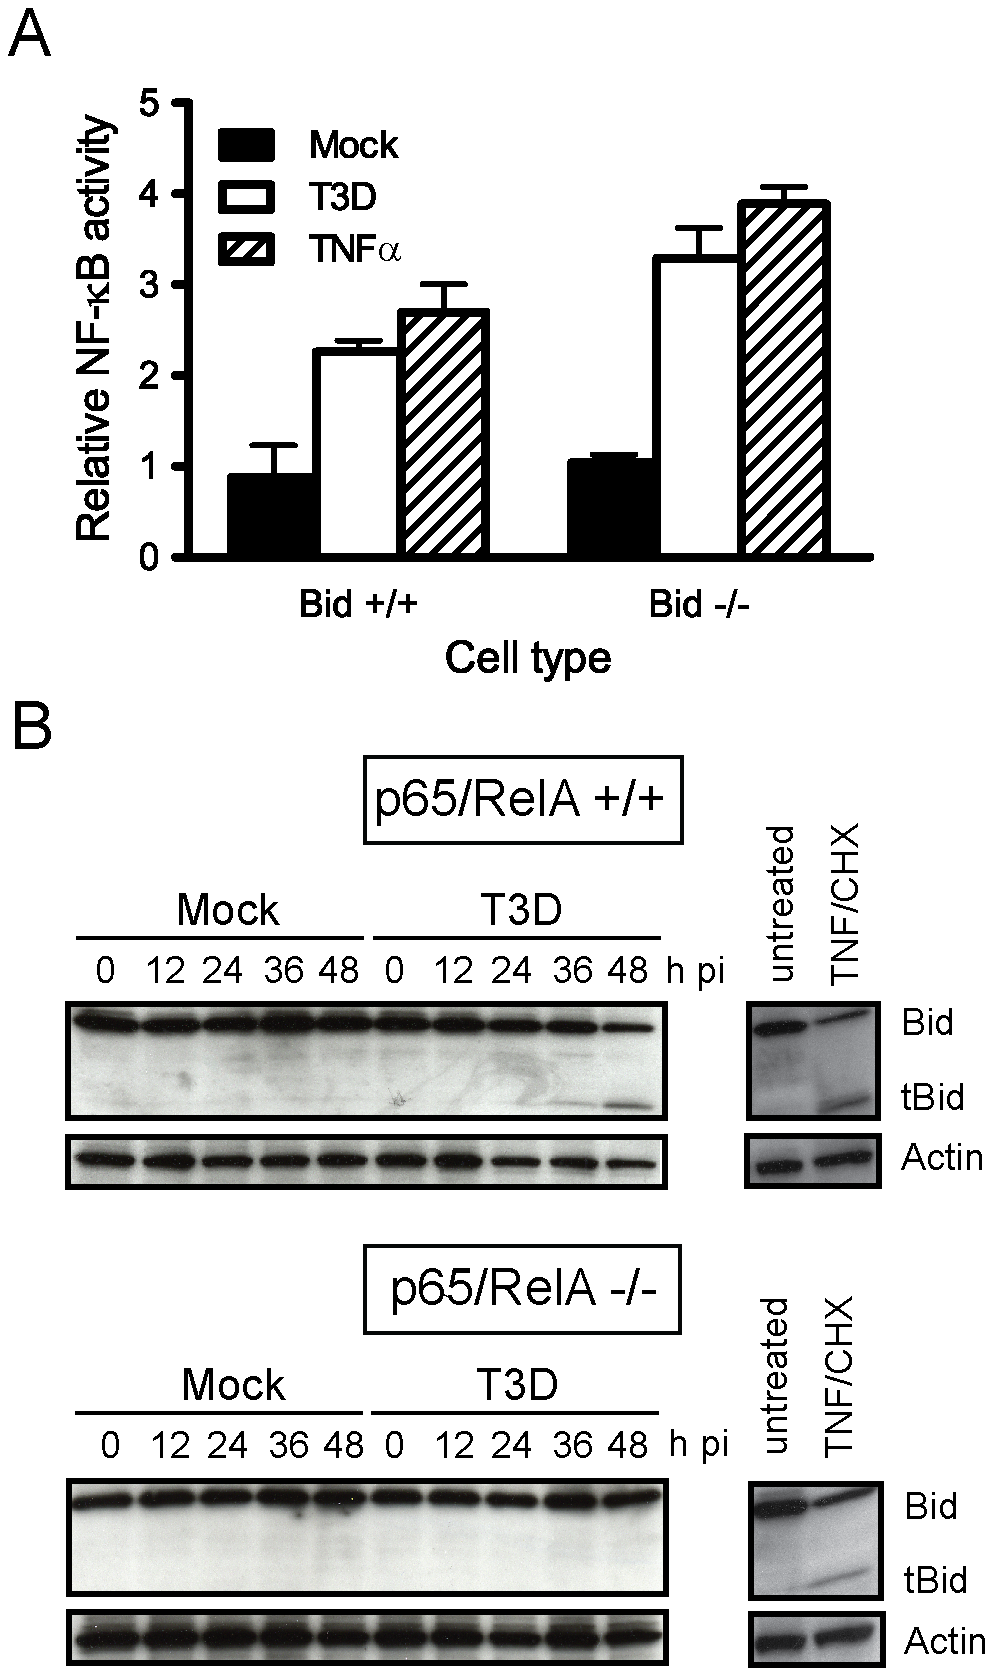 NF-κB is required for Bid cleavage following reovirus infection.